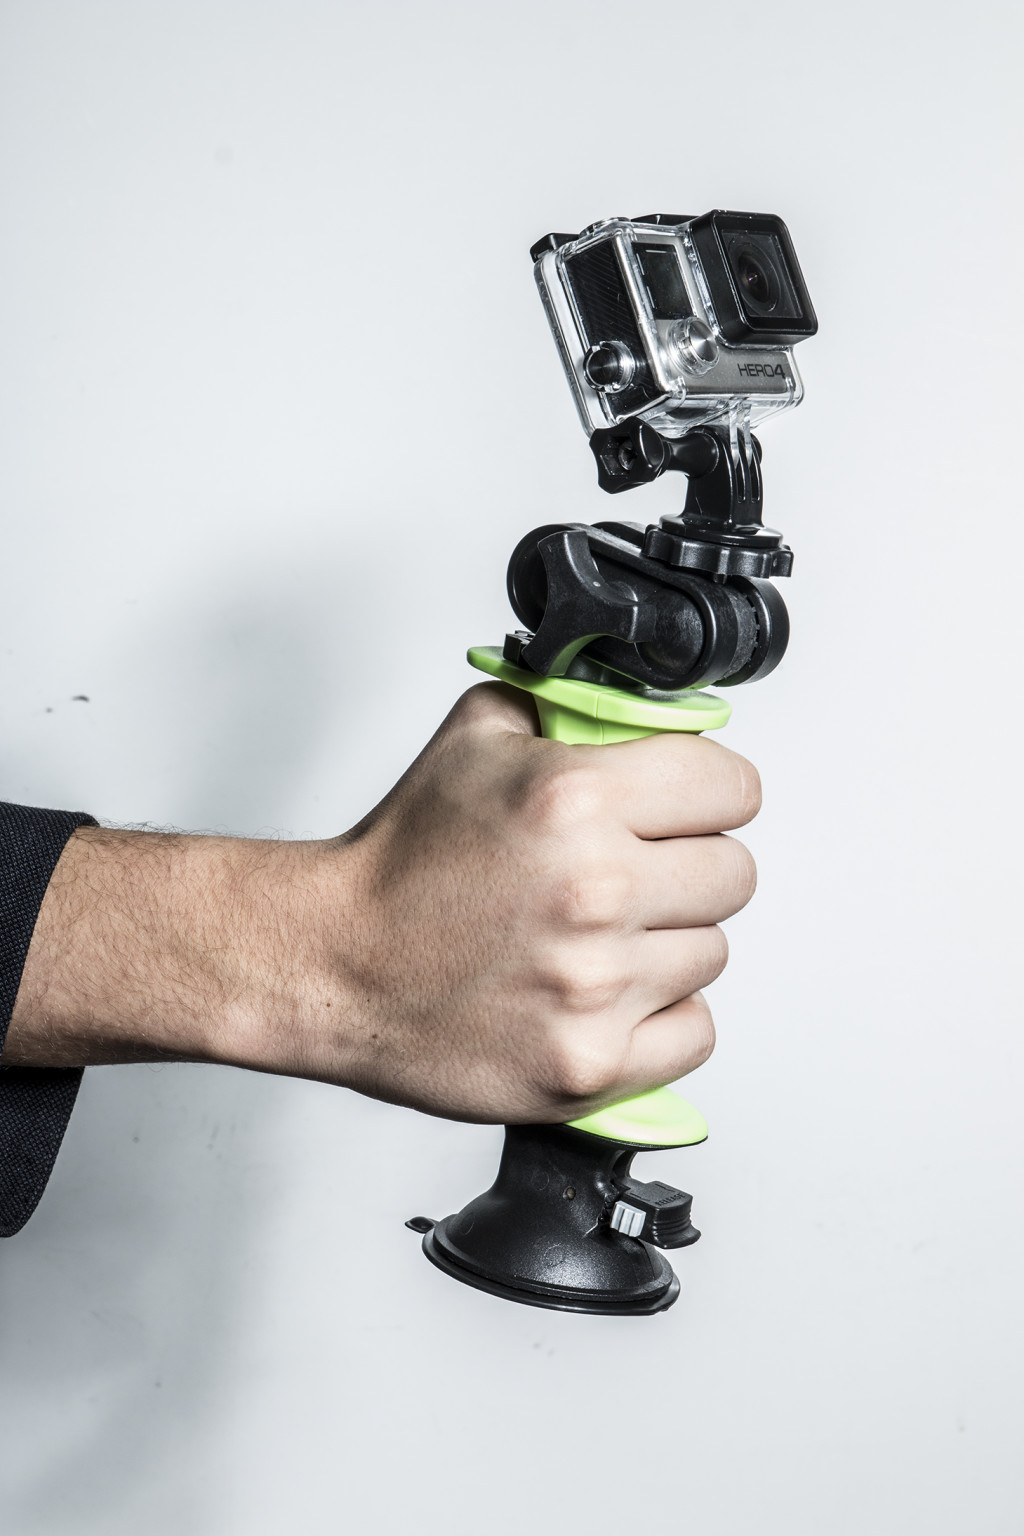 The Gerp has standard tripod mounts to allow it to be paired with all types of cameras and camcorders. Digital cameras of all size fit on the Gerp and can be mounted with the suction cup or handled with the camera grip.